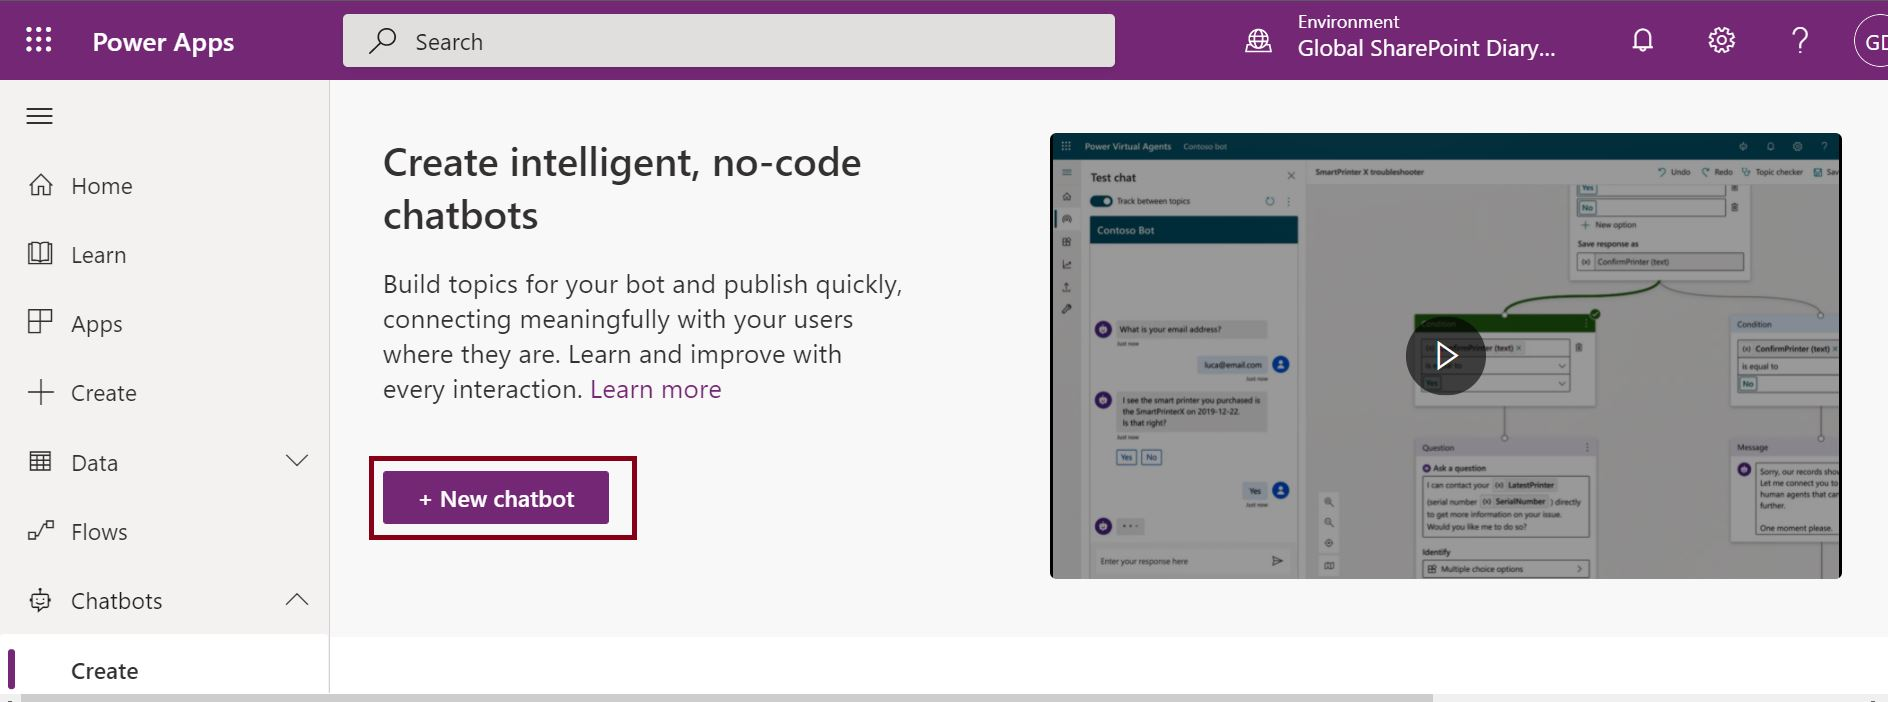 Create intelligent, no-code chatbots using PowerApps